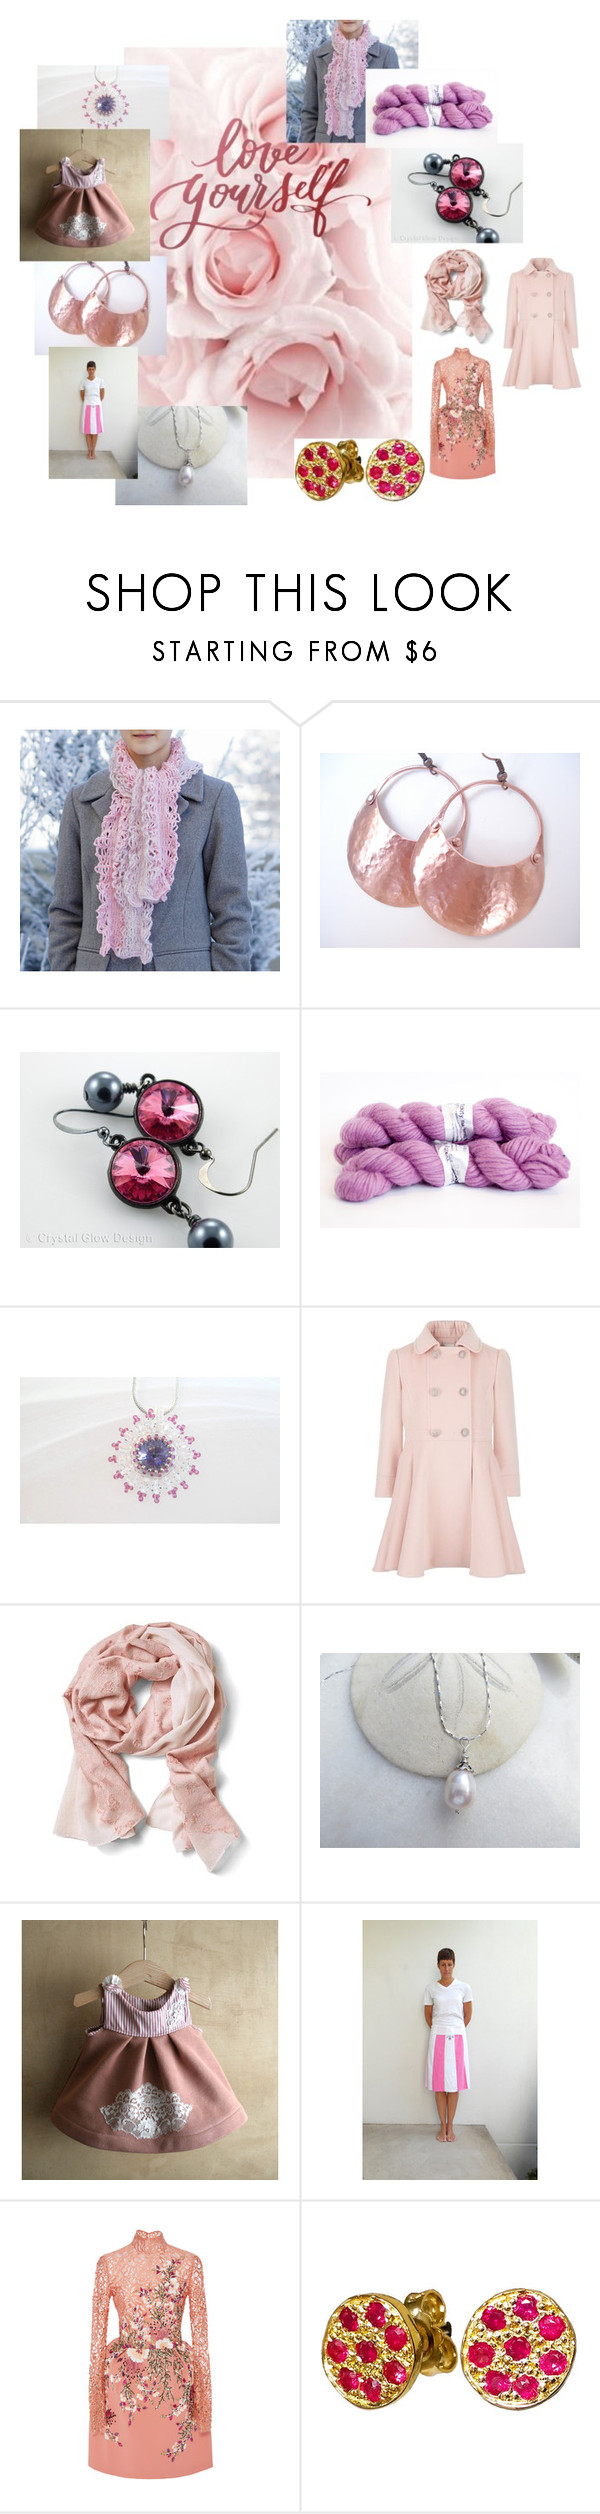 """""""Love Yourself"""" by valeriebaberdesigns ❤ liked on Polyvore featuring Banana Republic, Georges Hobeika and Giallo"""